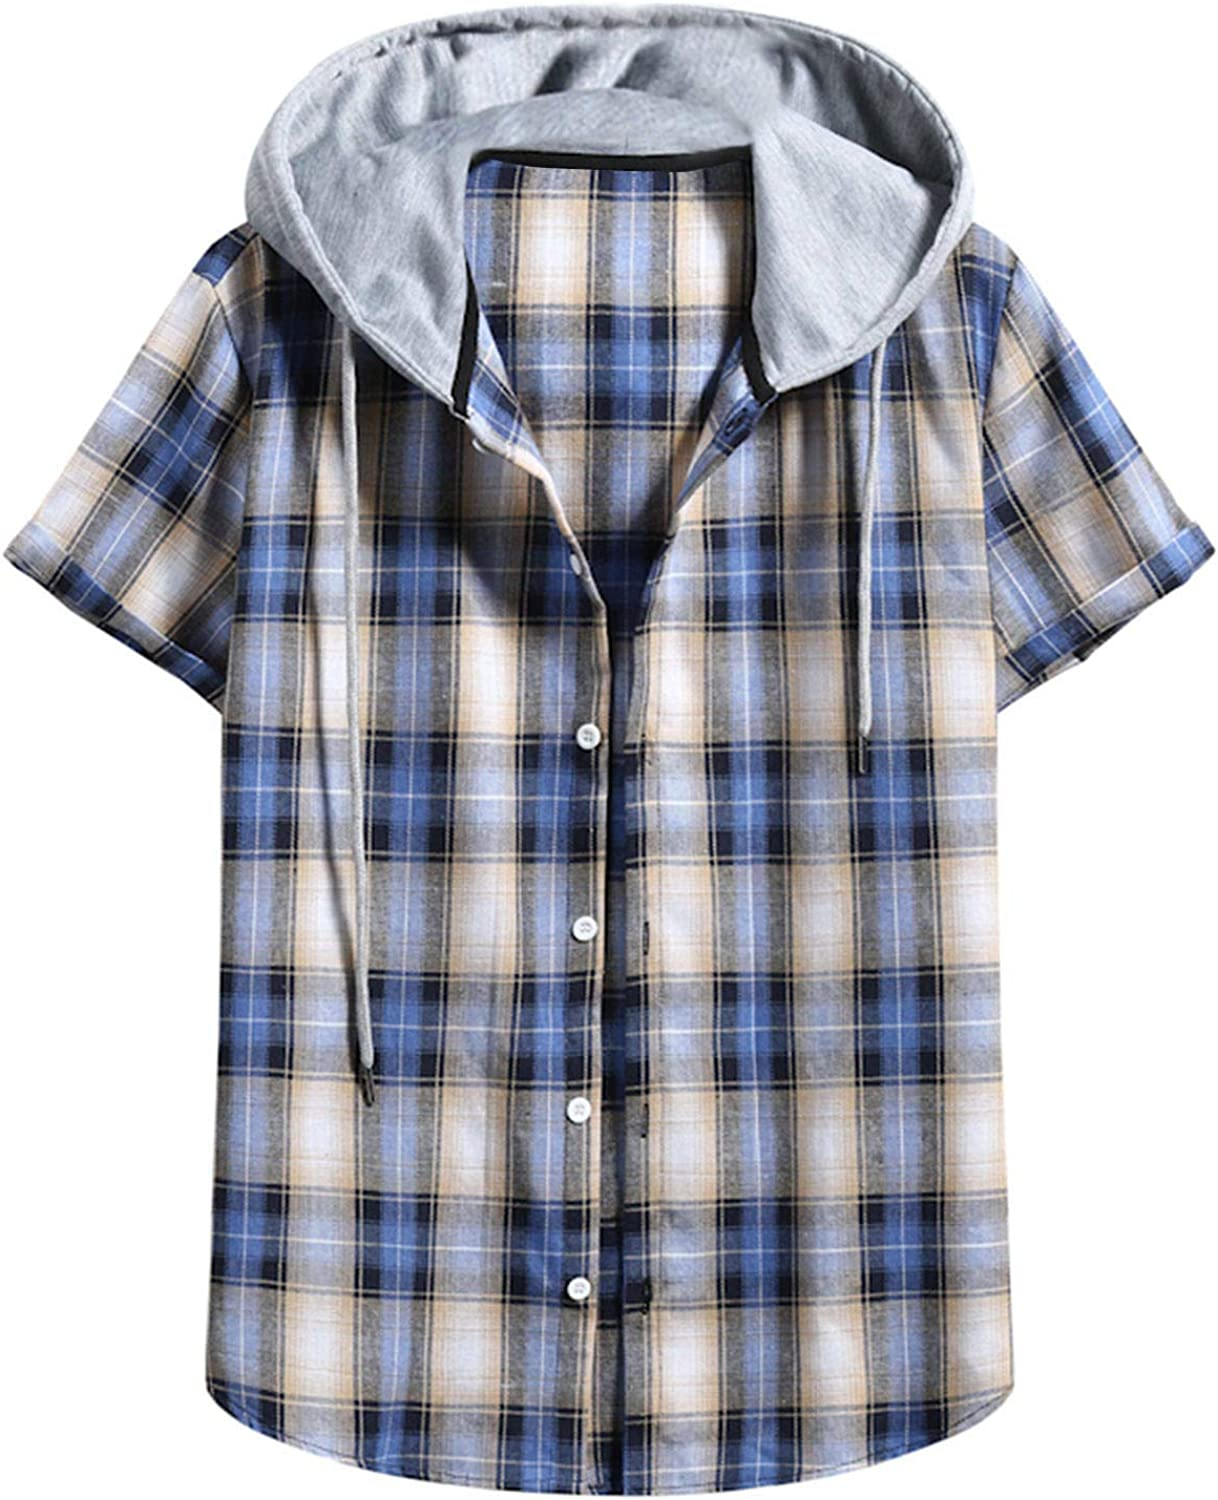 ZSBAYU Men's Plaid Flannel Shirt Casual Button Short Sleeve Tshirt Tops with Hood, Juniors' Checkered Hooded Shirts